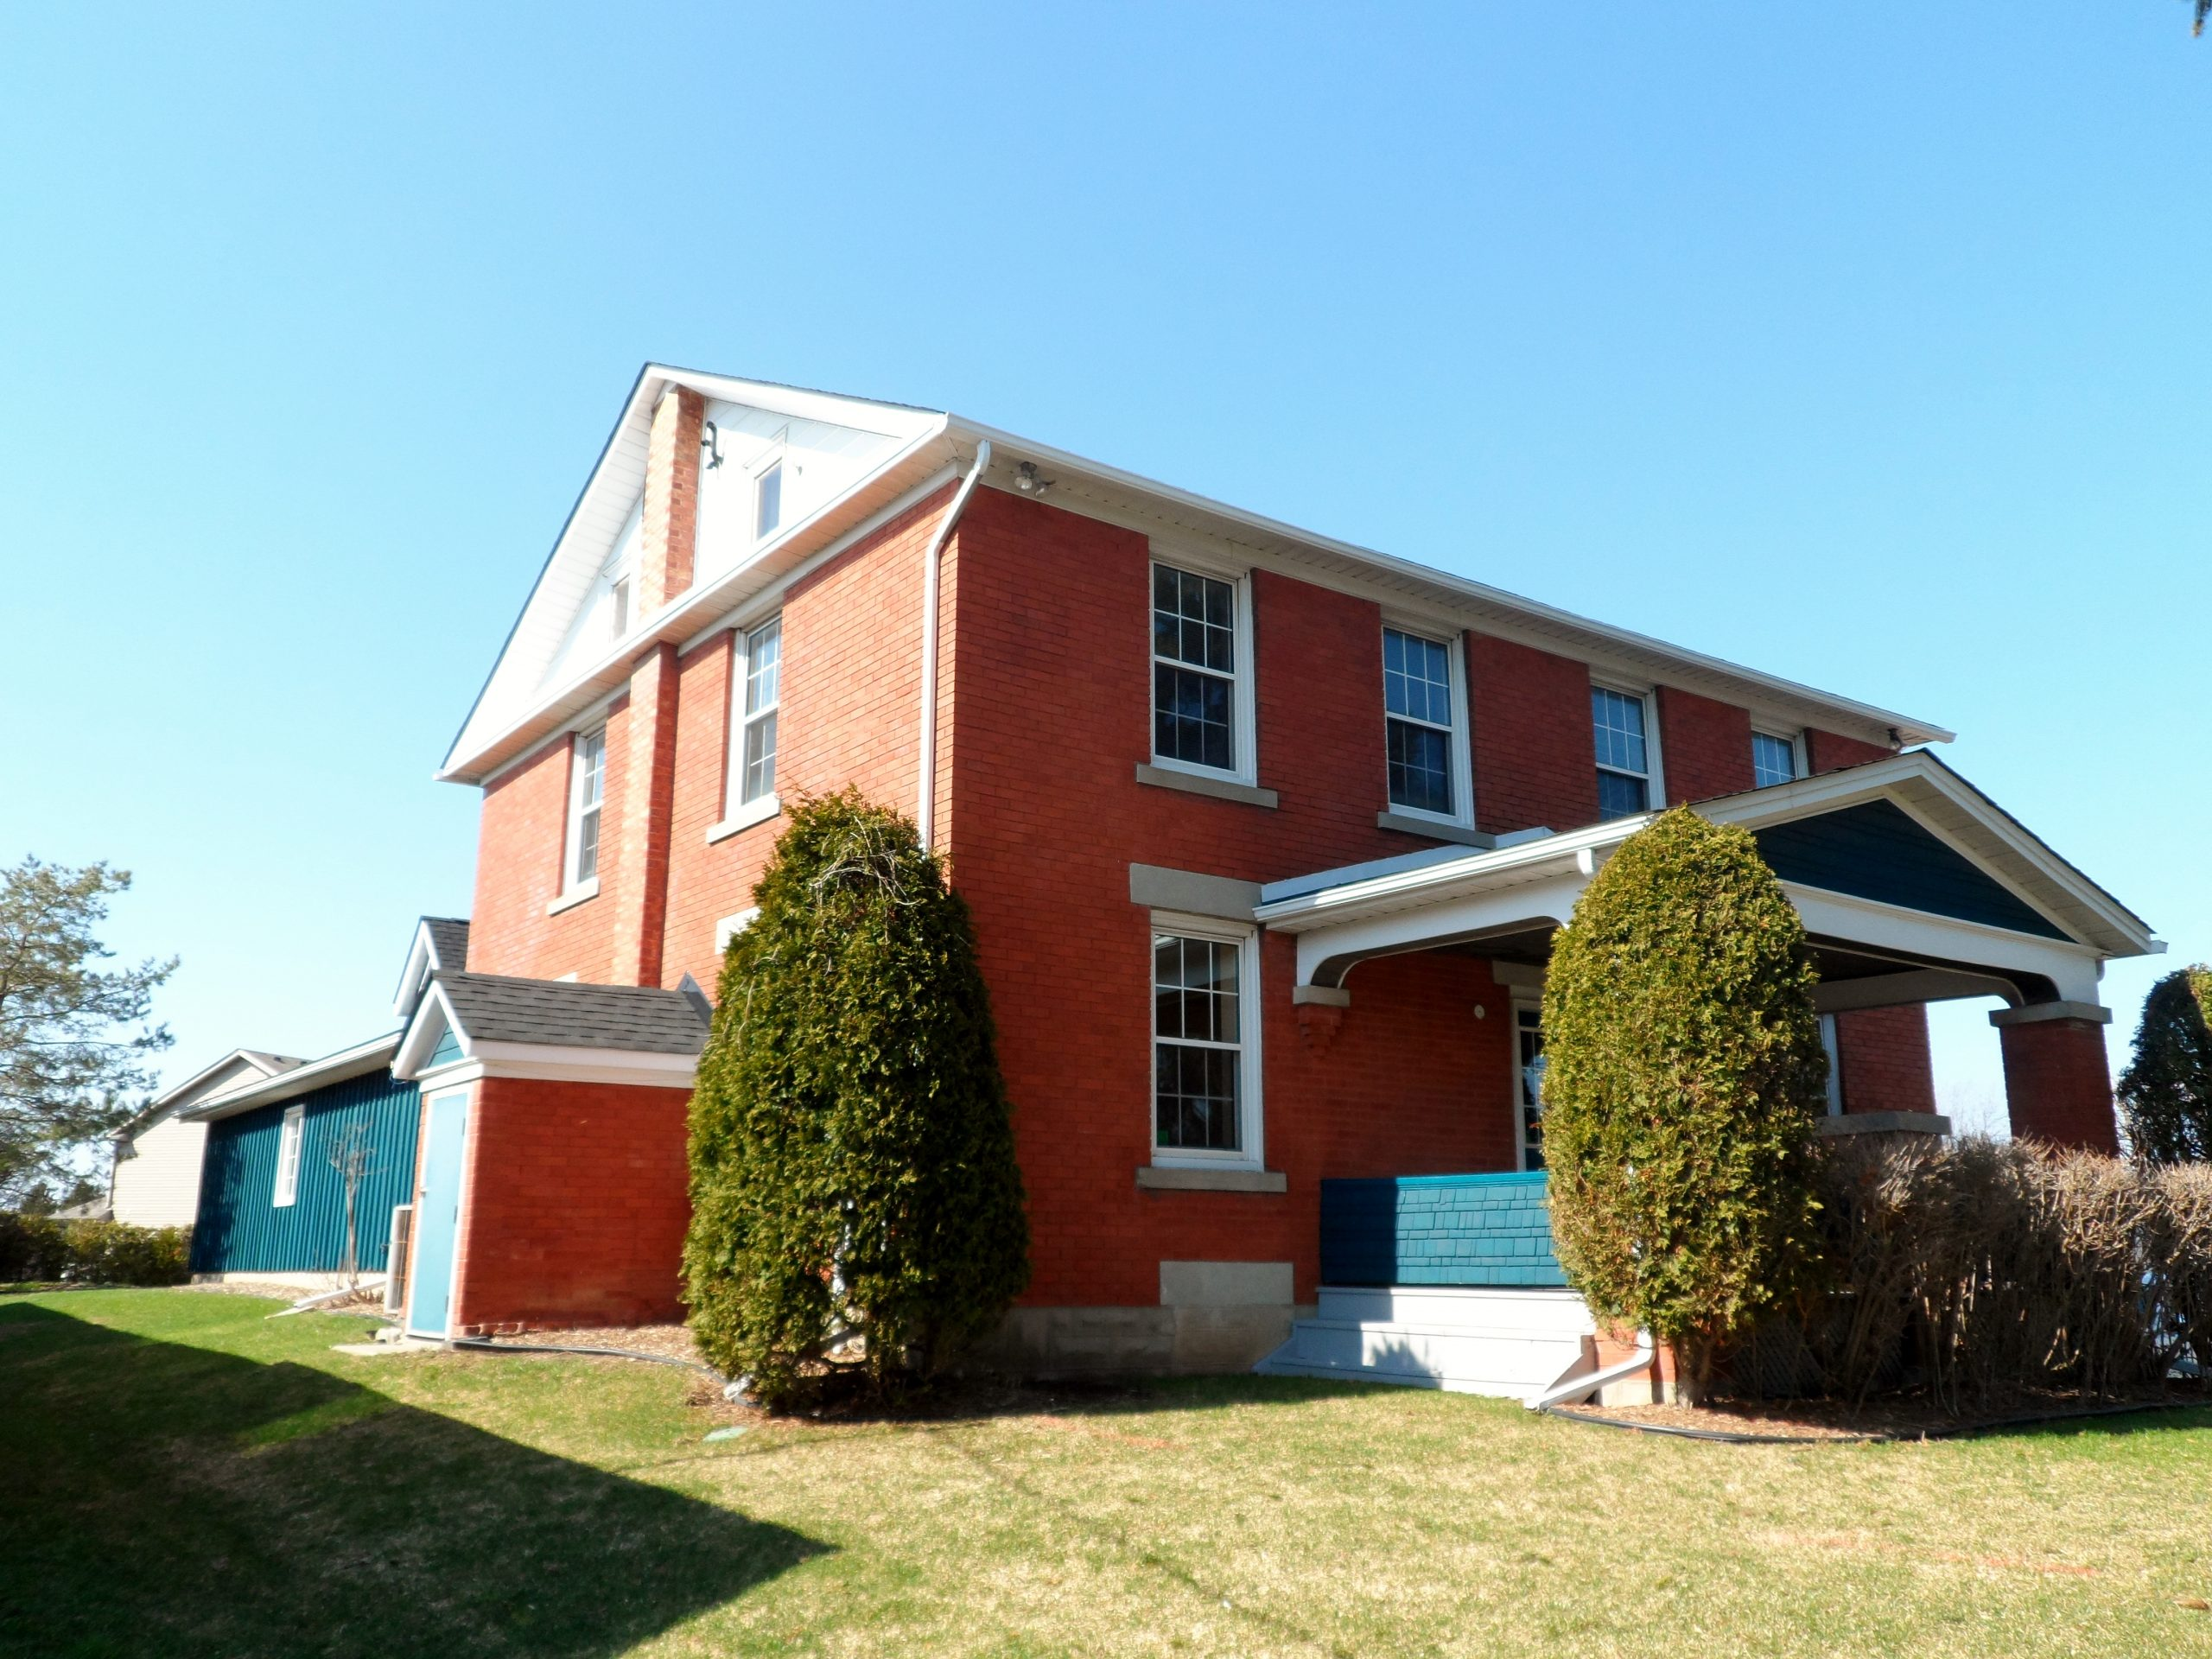 1188 Ottawa Street South (Unit #2), Kitchener | Office Space Available for Lease